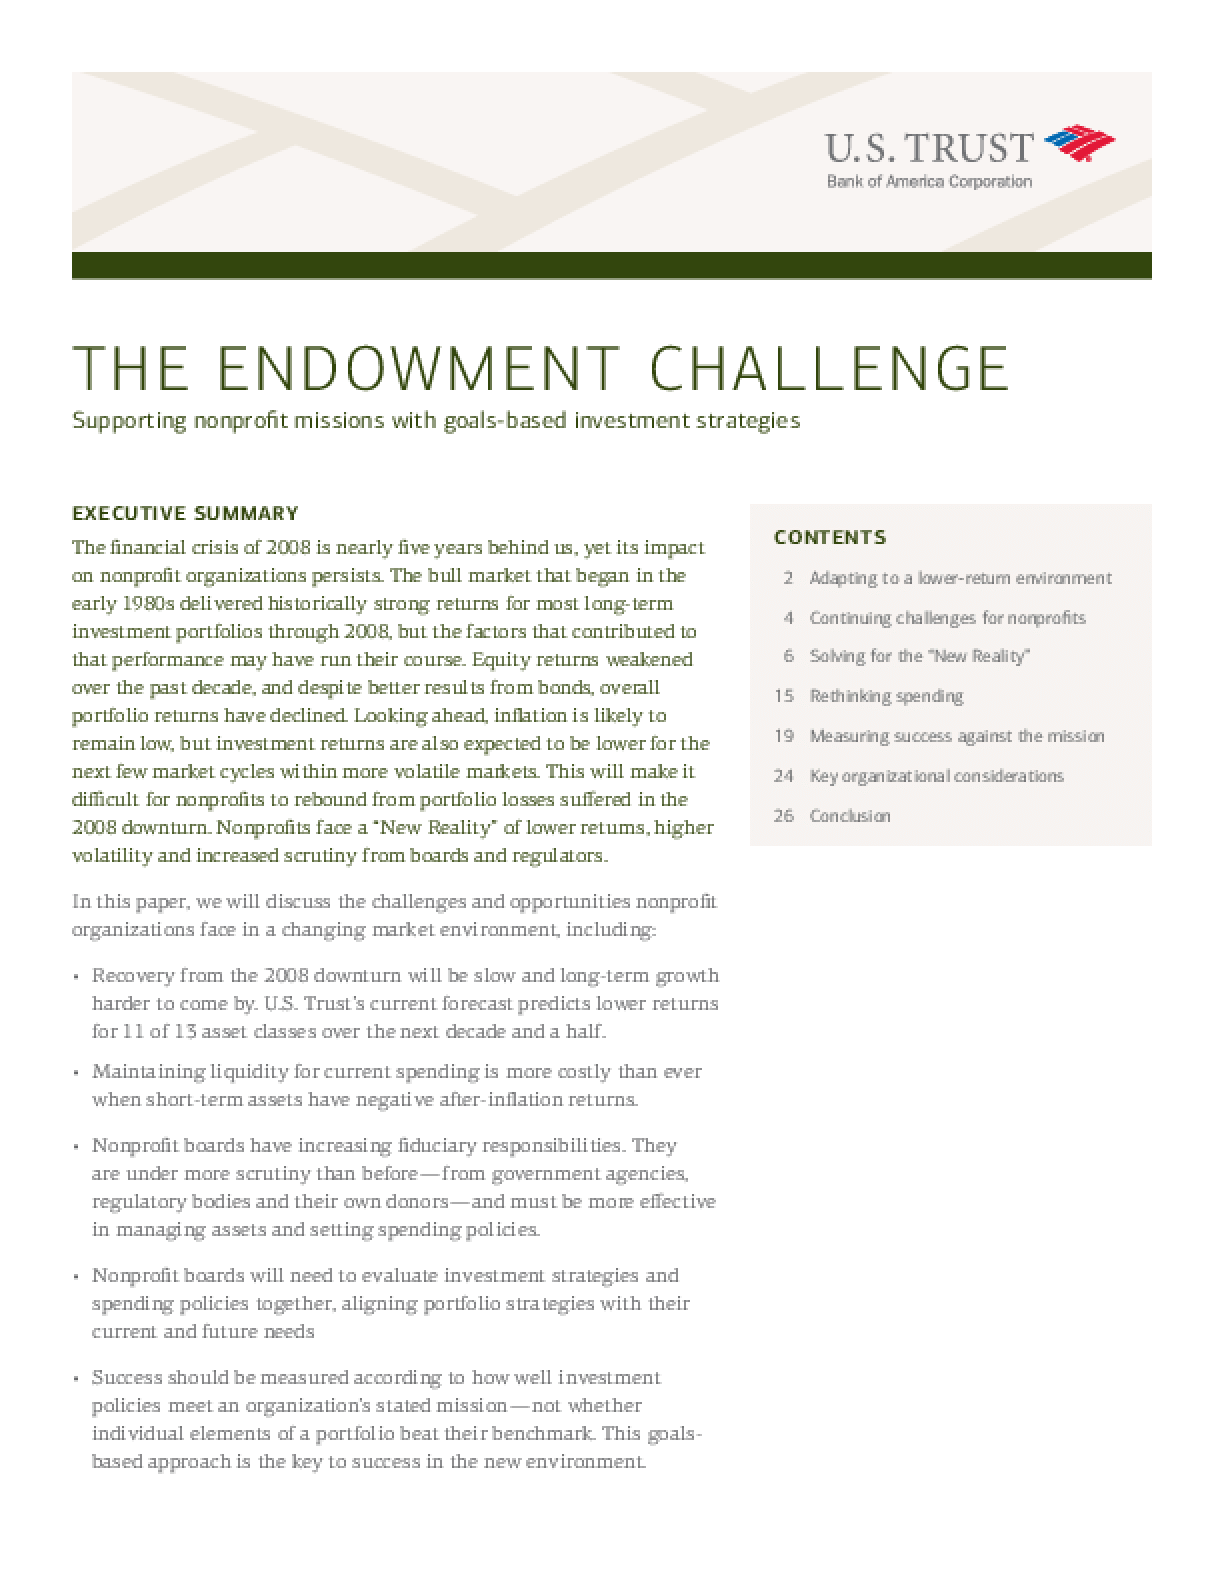 The Endowment Challenge